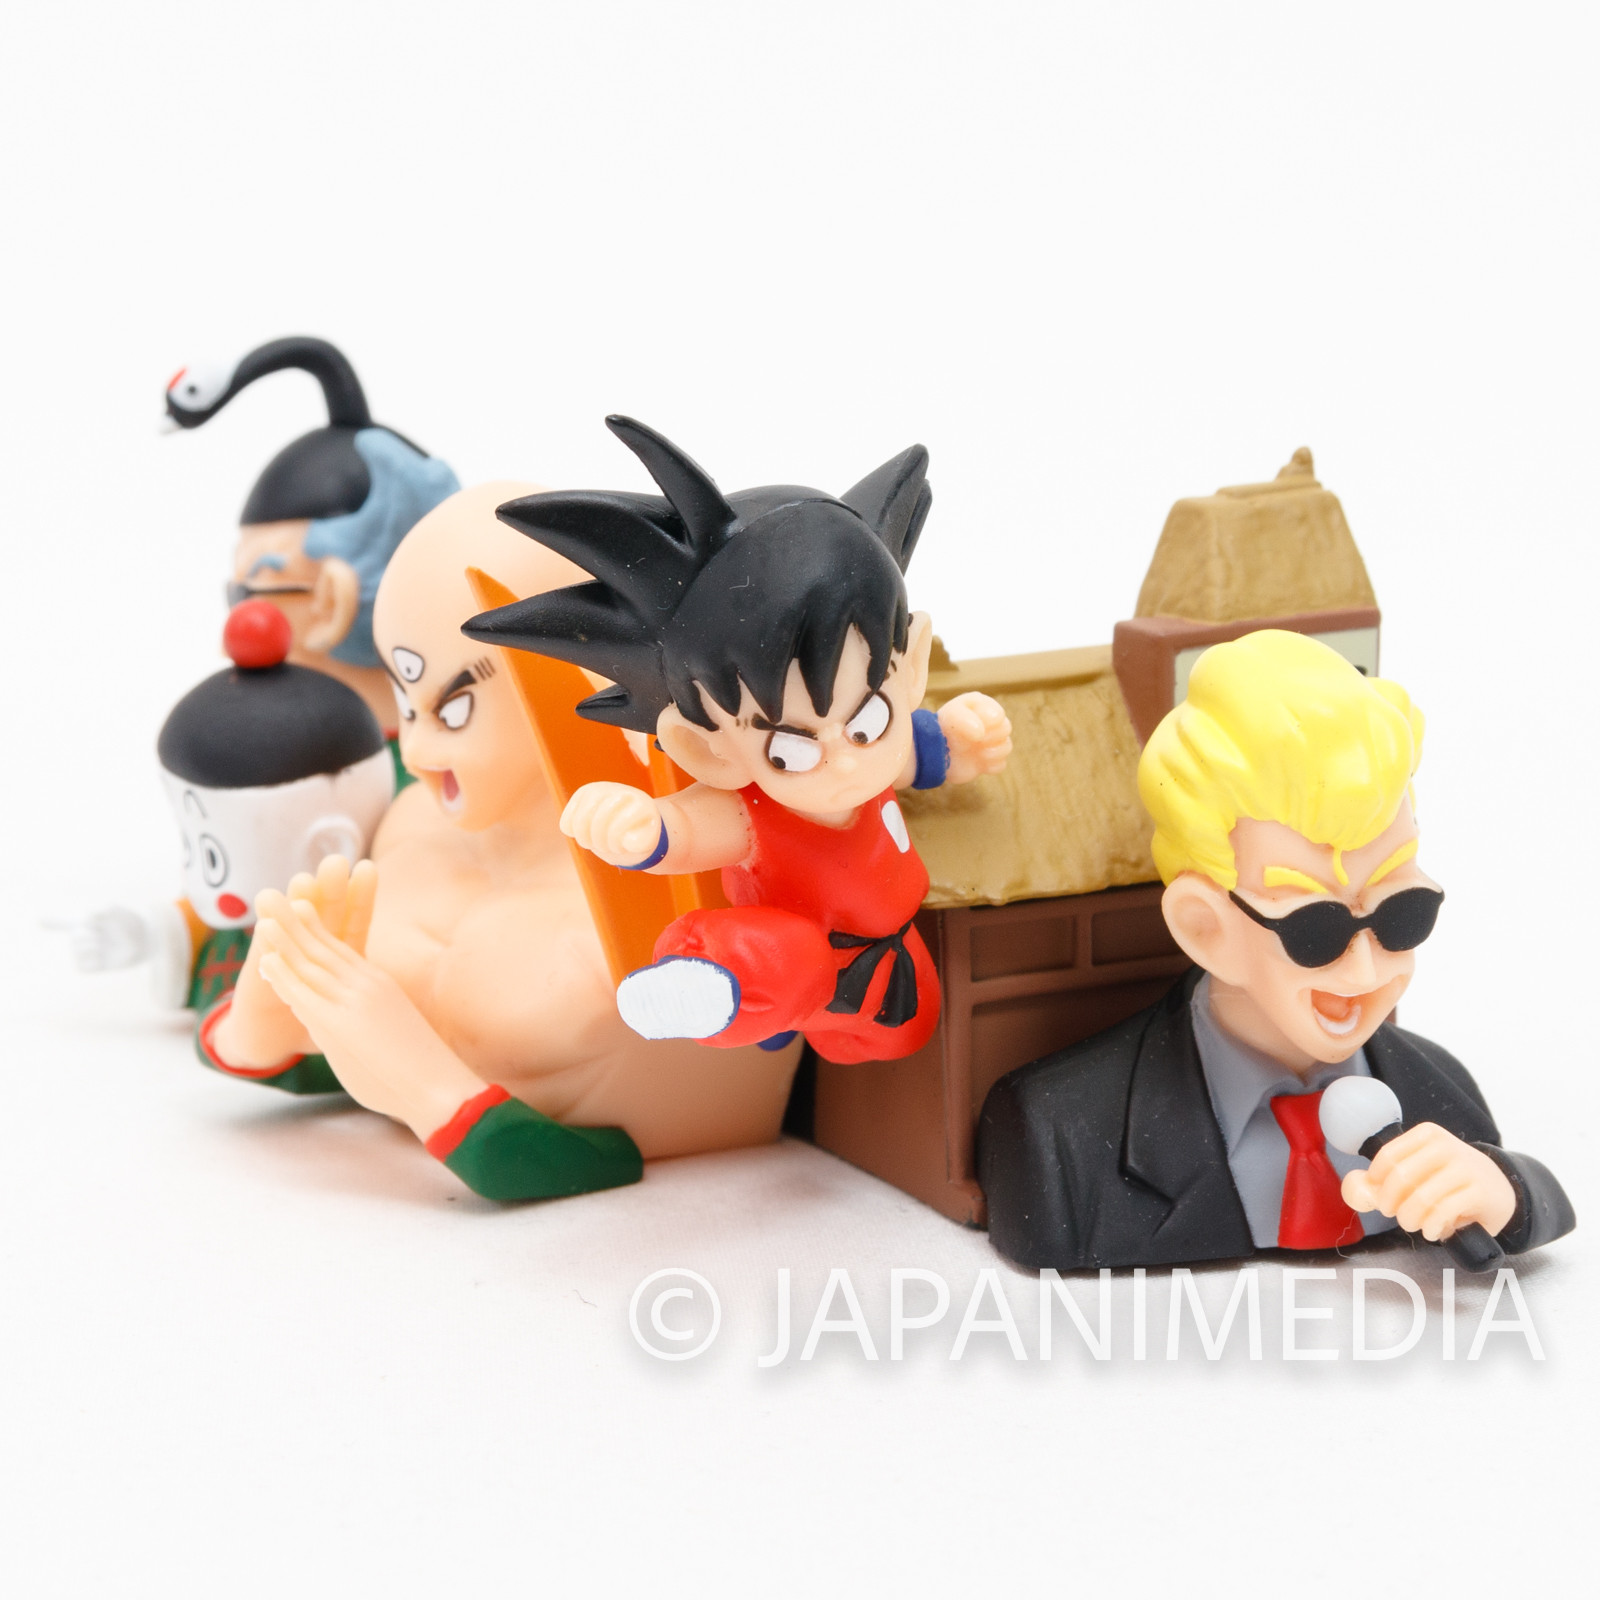 Dragon Ball Z Historical Figure 03 Gokou Tenshinhan Chaoz JAPAN ANIME 2